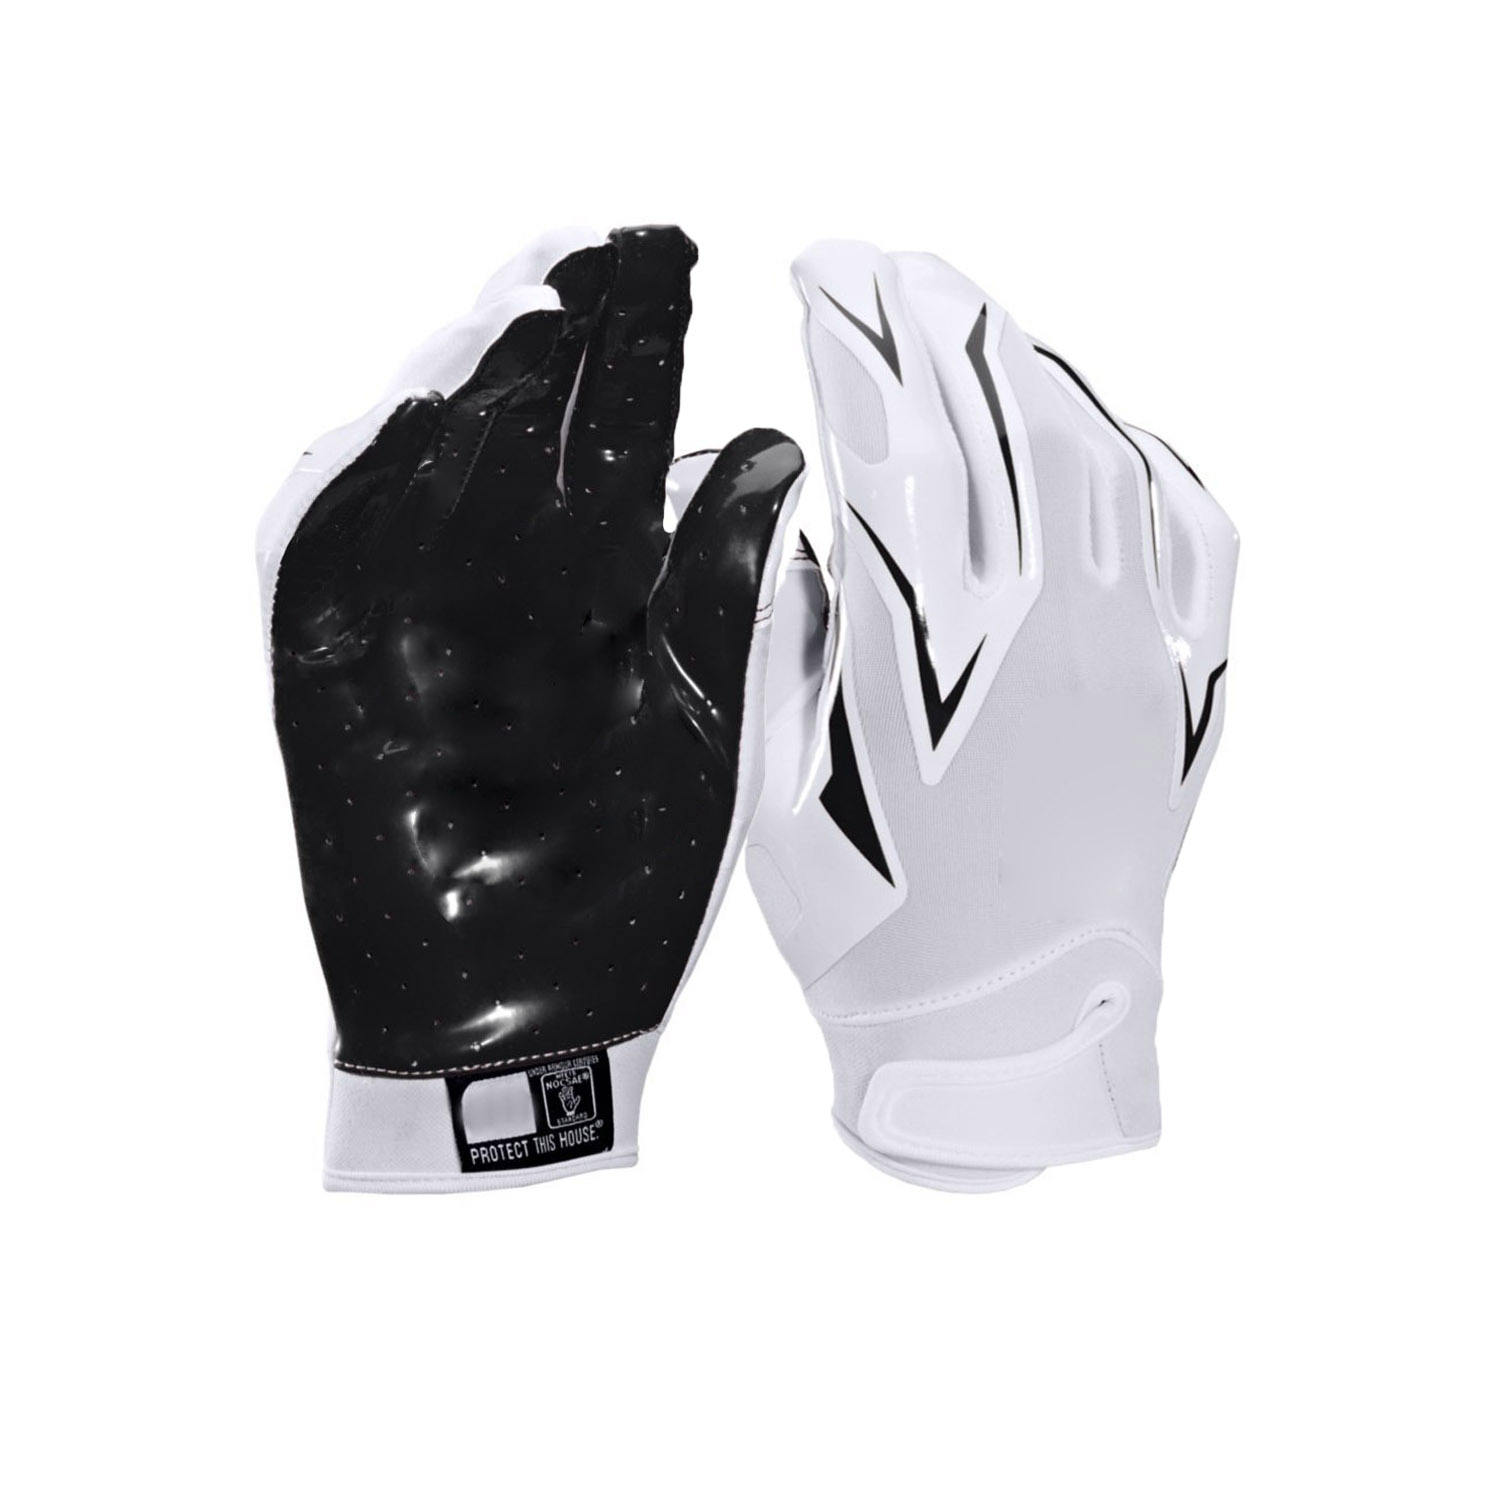 Customized palm american football gloves manufacturer, custom american football gloves